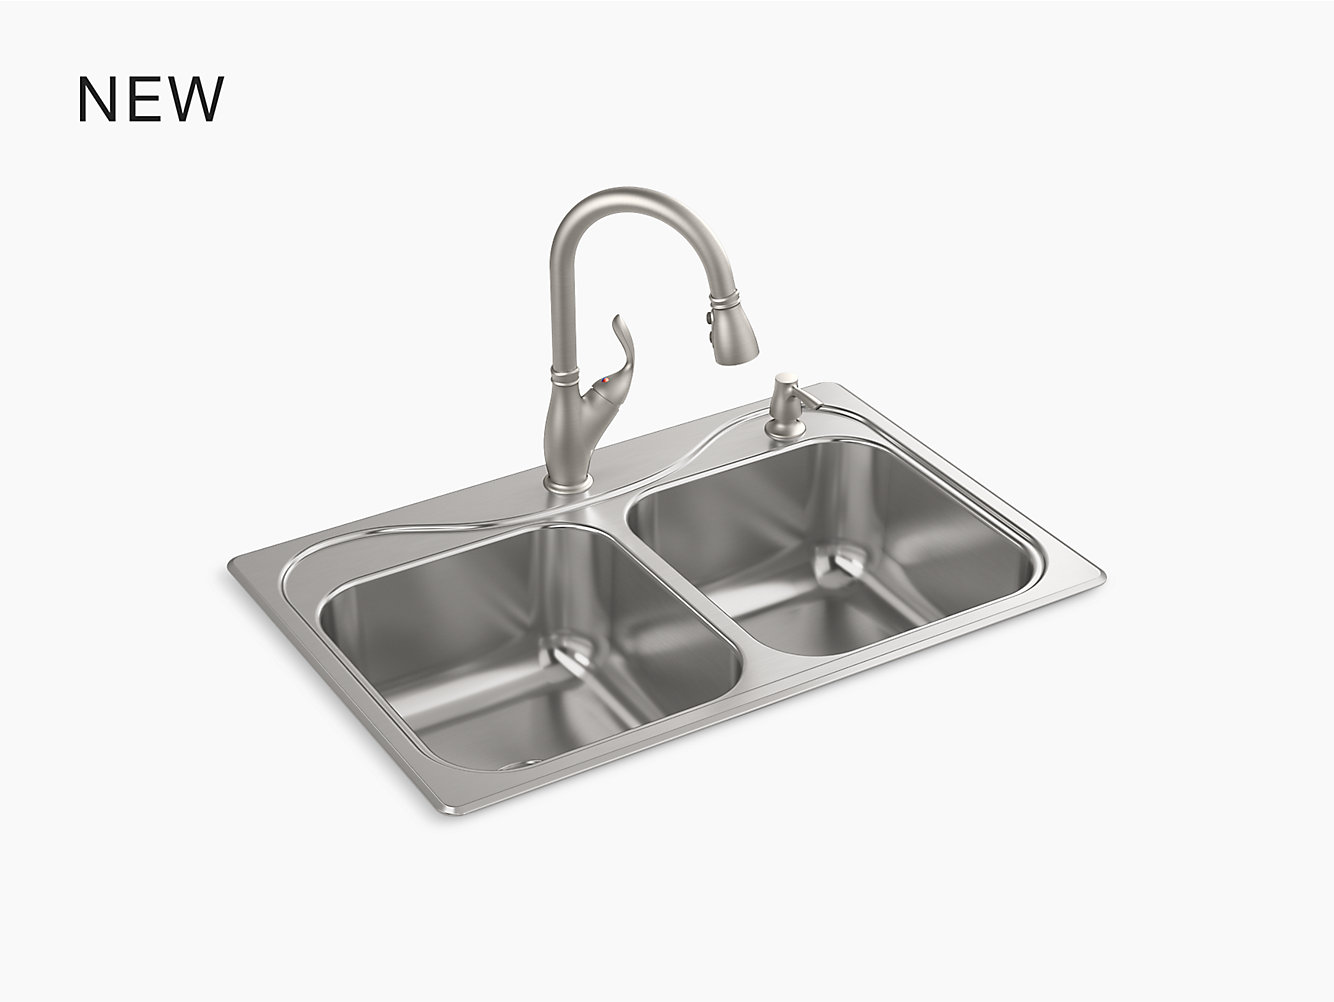 Southhaven All In One 33 X 22 X 8 1 2 Top Mount Kitchen Sink Kit R30230 2pc Na Southhaven All In One Top Mount Kitchen Sink Kit R30230 2pc Sterling